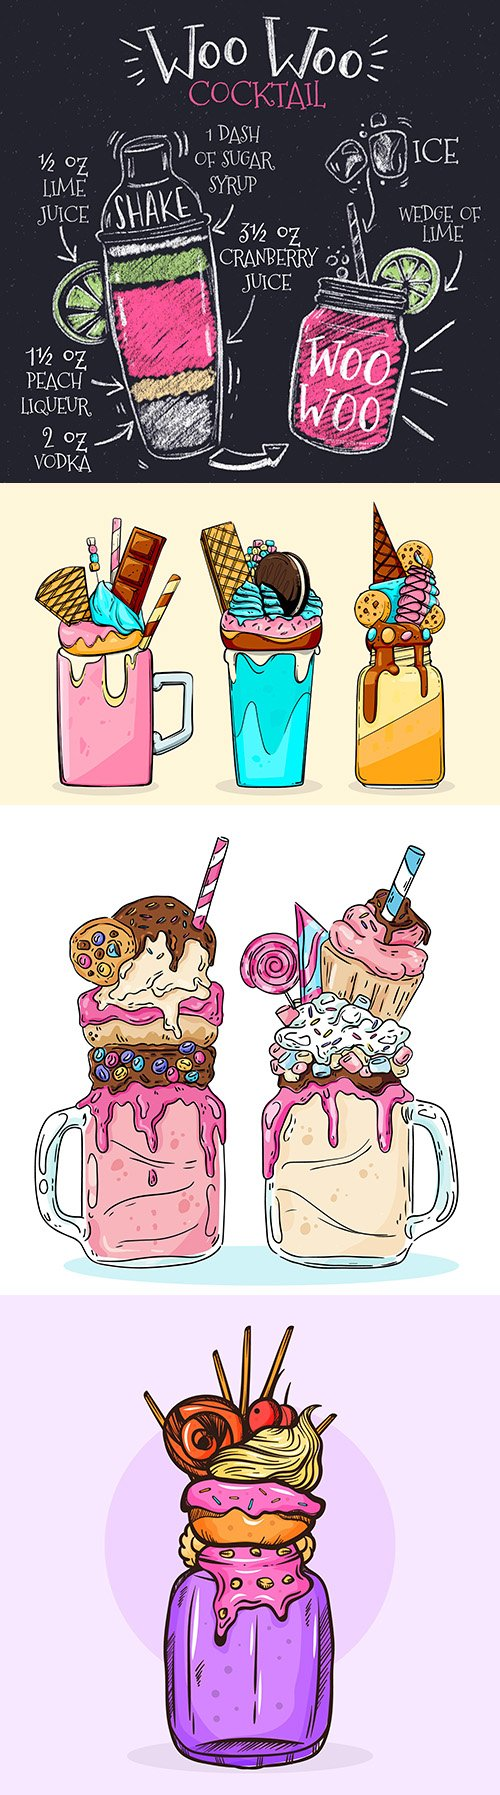 Classic cocktail recipe and monster shakes illustrations